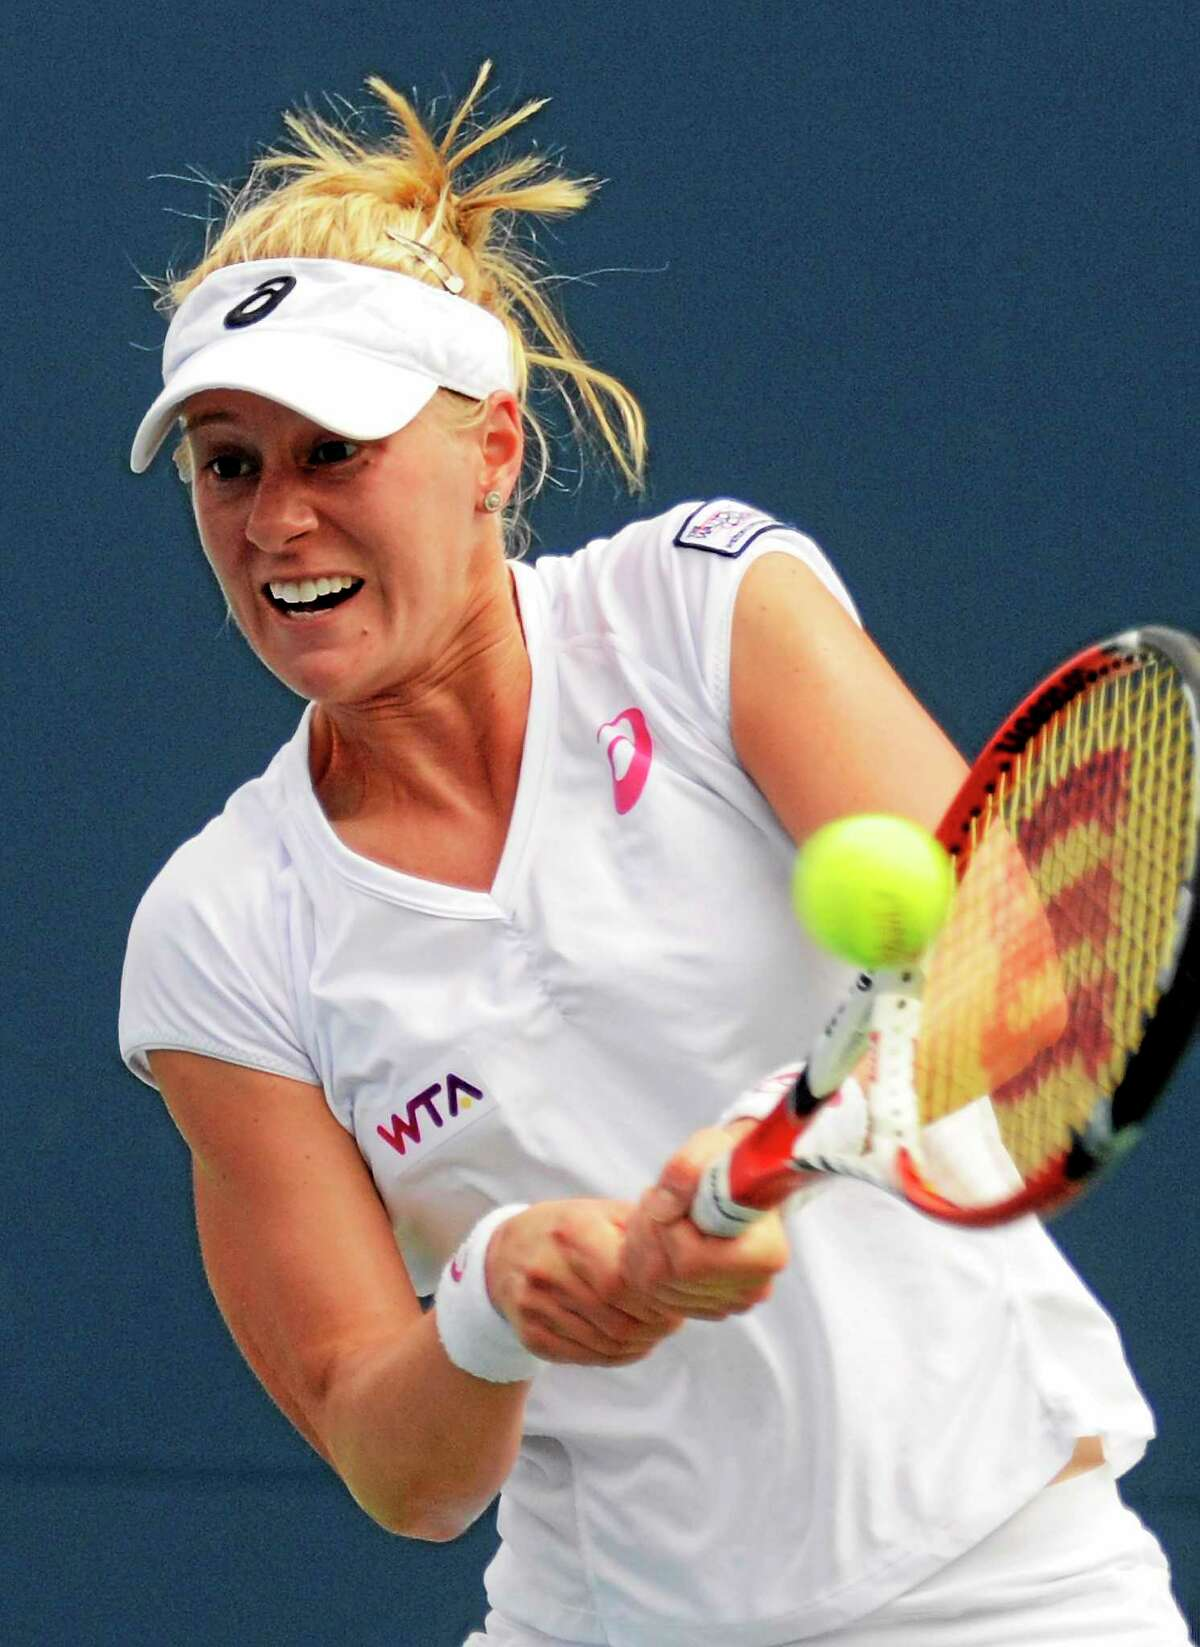 Alison Riske, the final American in the field, was eliminated in the Connecticut Open quarterfinals on Thursday by Magdalena Rybarikova.